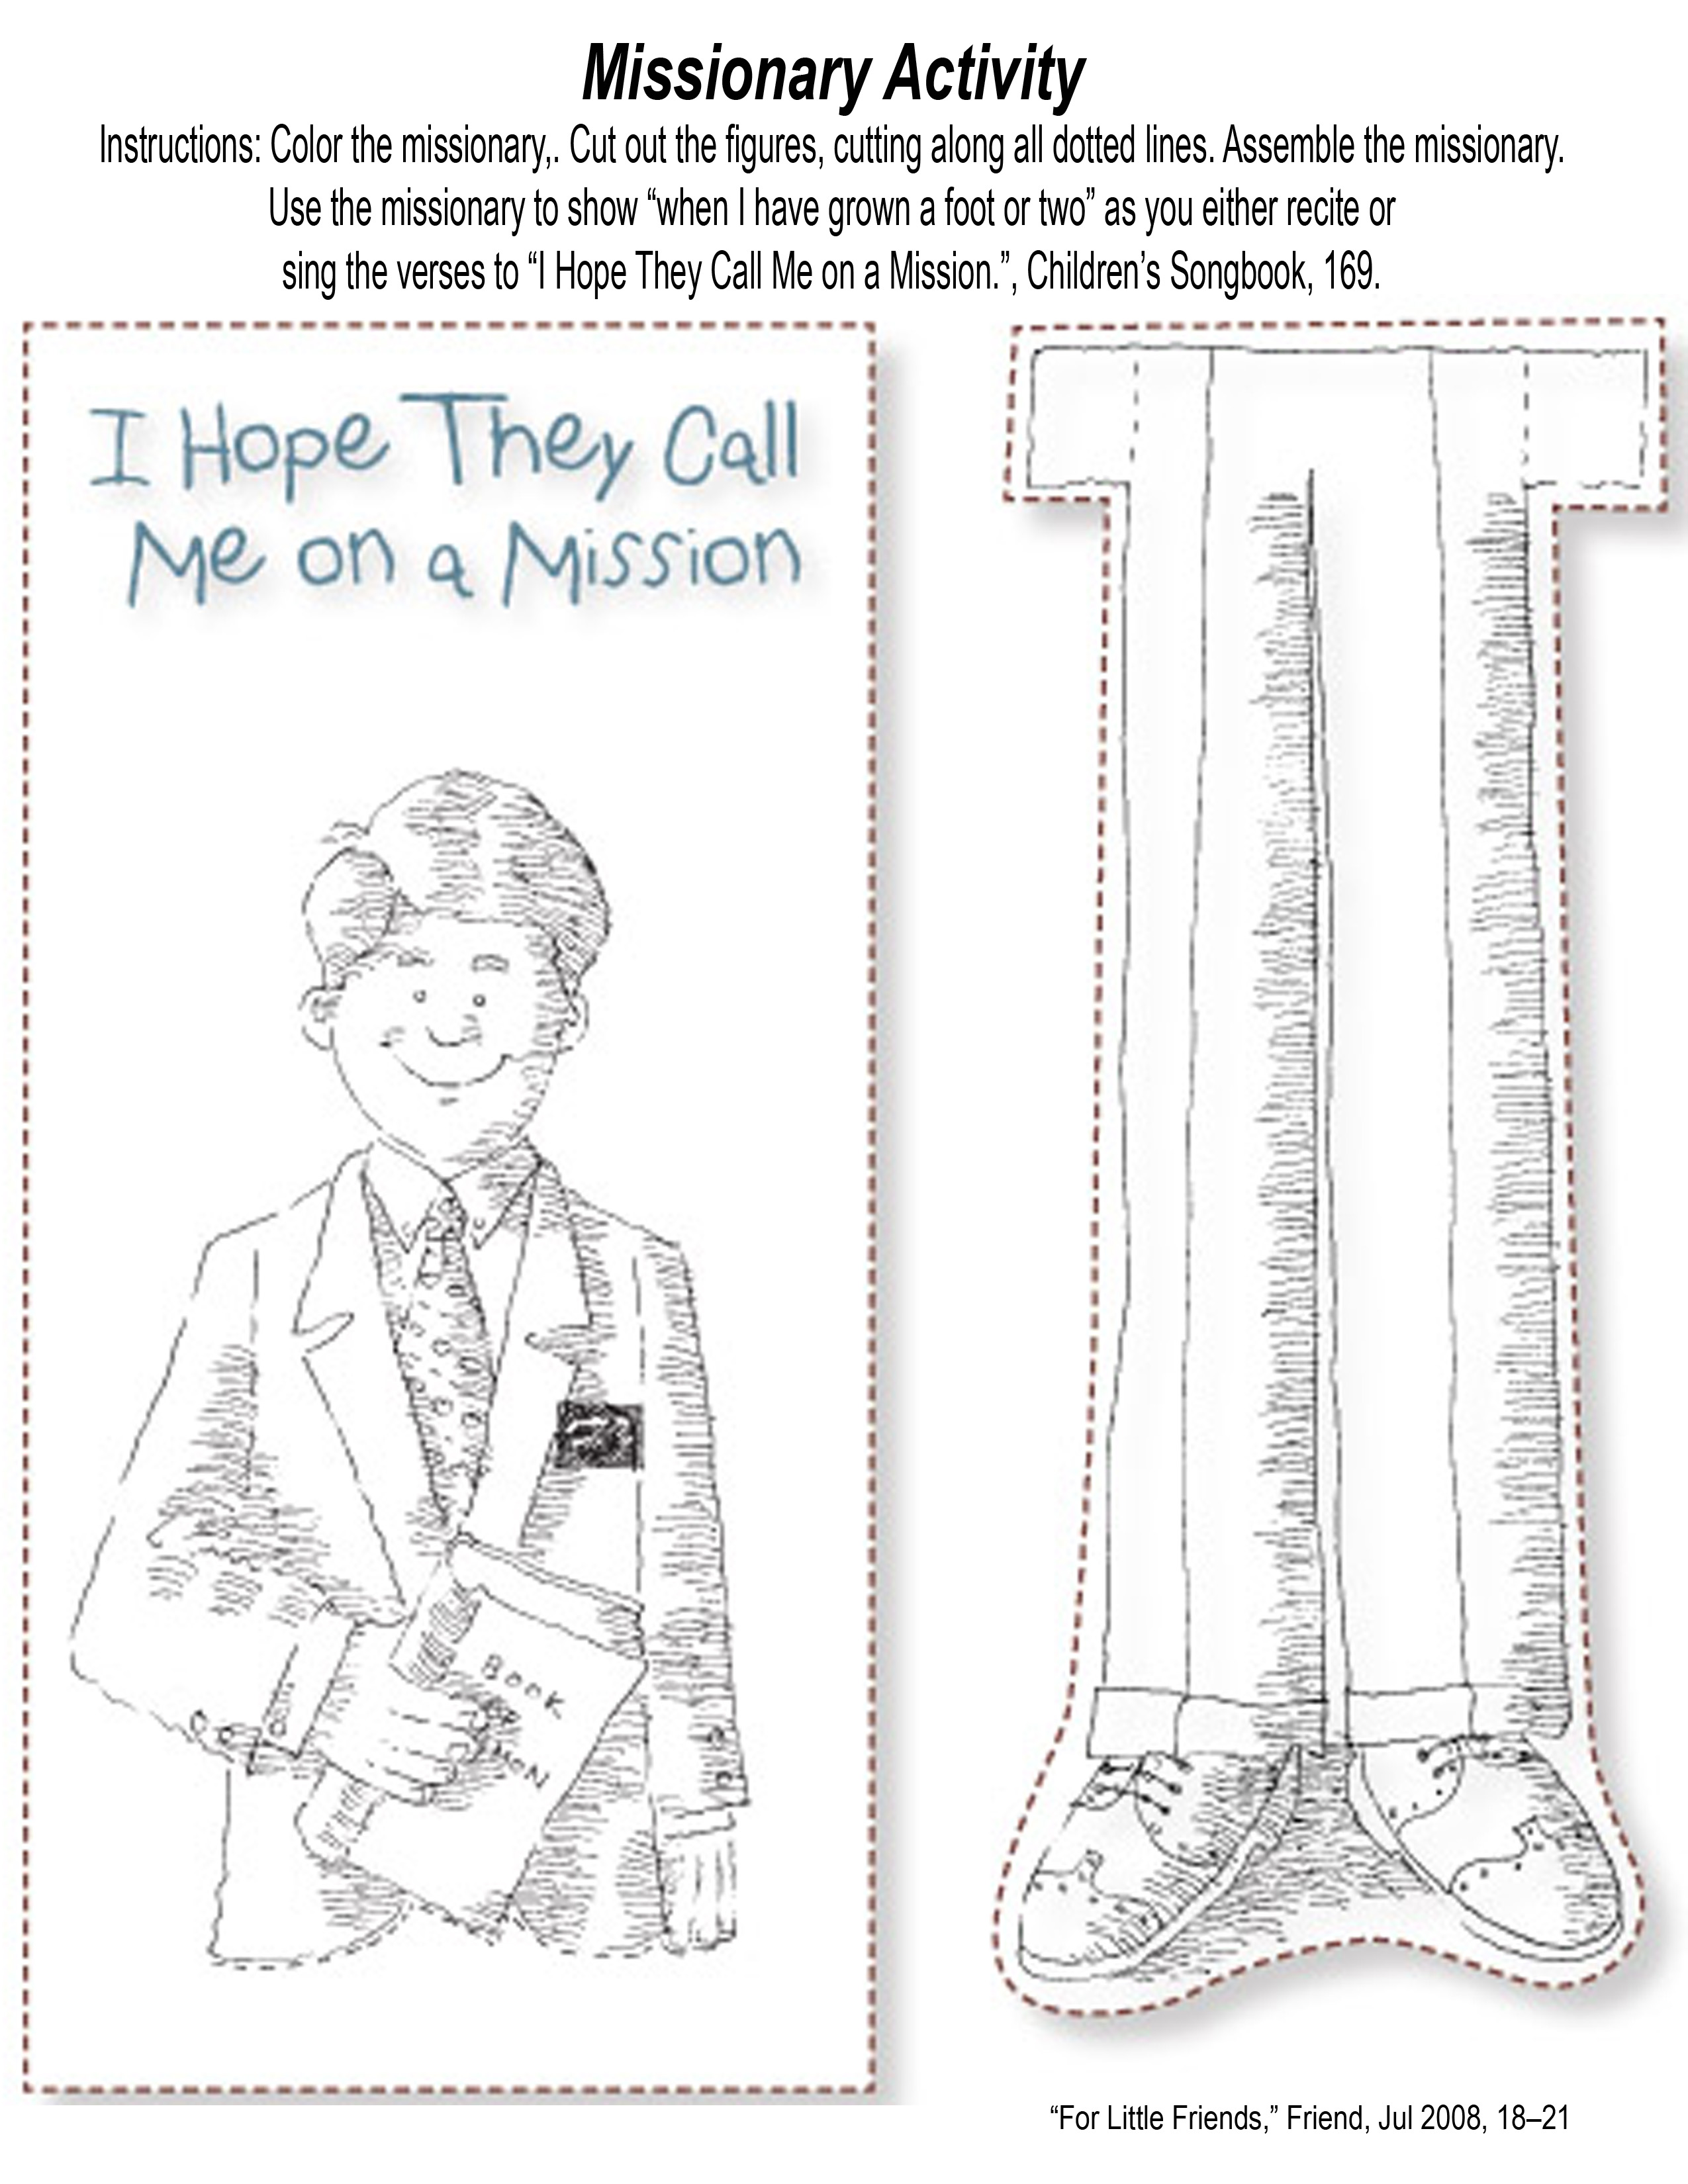 Youth Missionary Worksheet